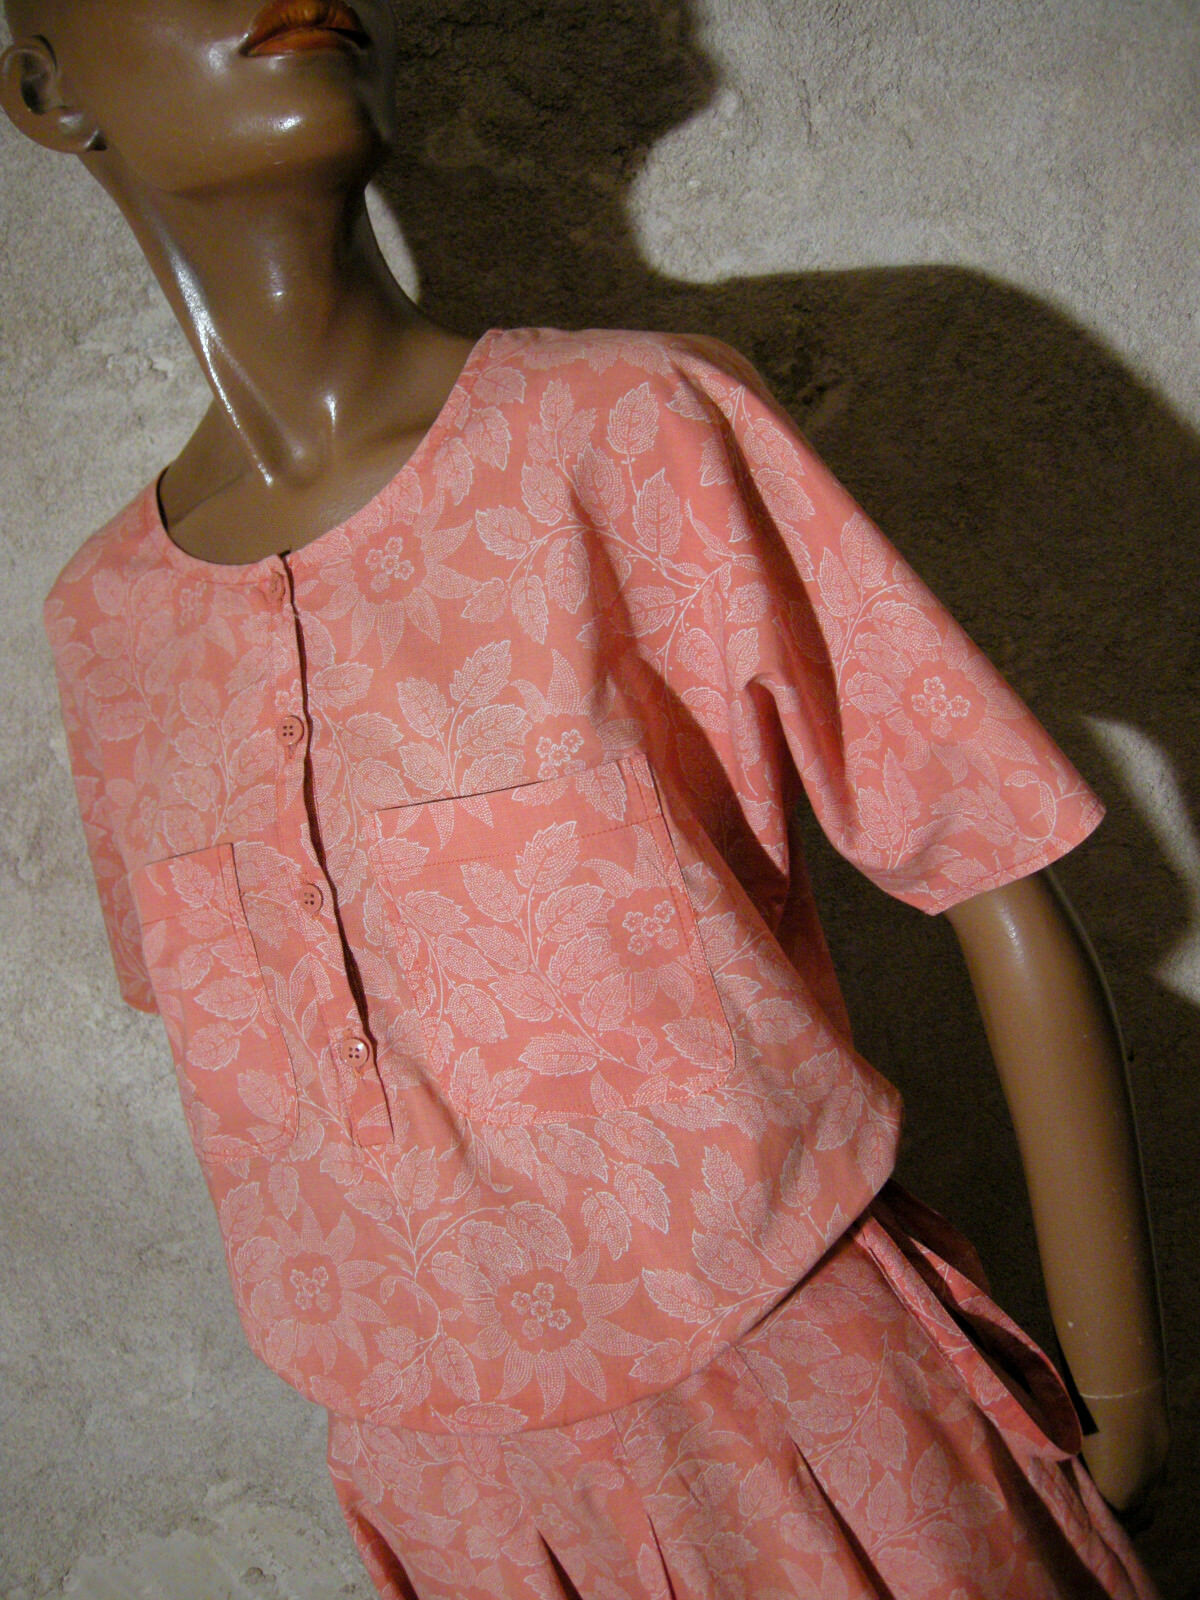 Cacharel chic vintage robe 1970 true vtg dress 70s kleid 70er abito retro ( 36 )